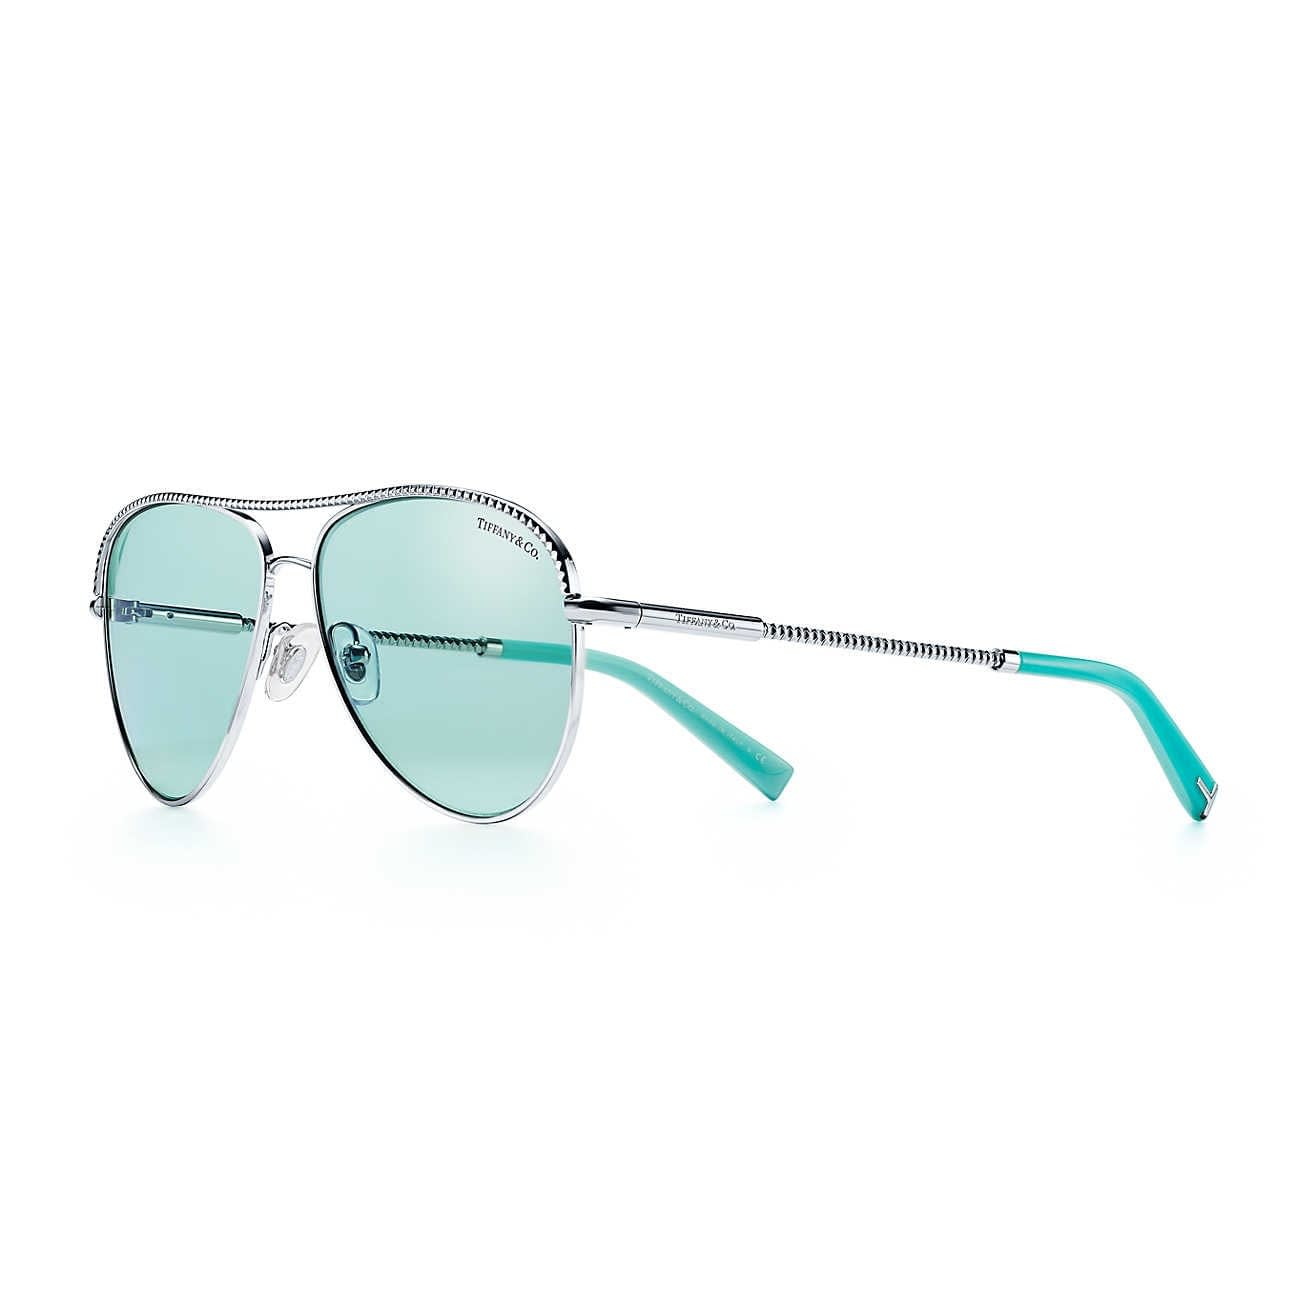 Mothers Day Gift ideas from Newport Living and Lifestyles Tiffany & Co. Pilot Sunglasses in Tiffany blue $340